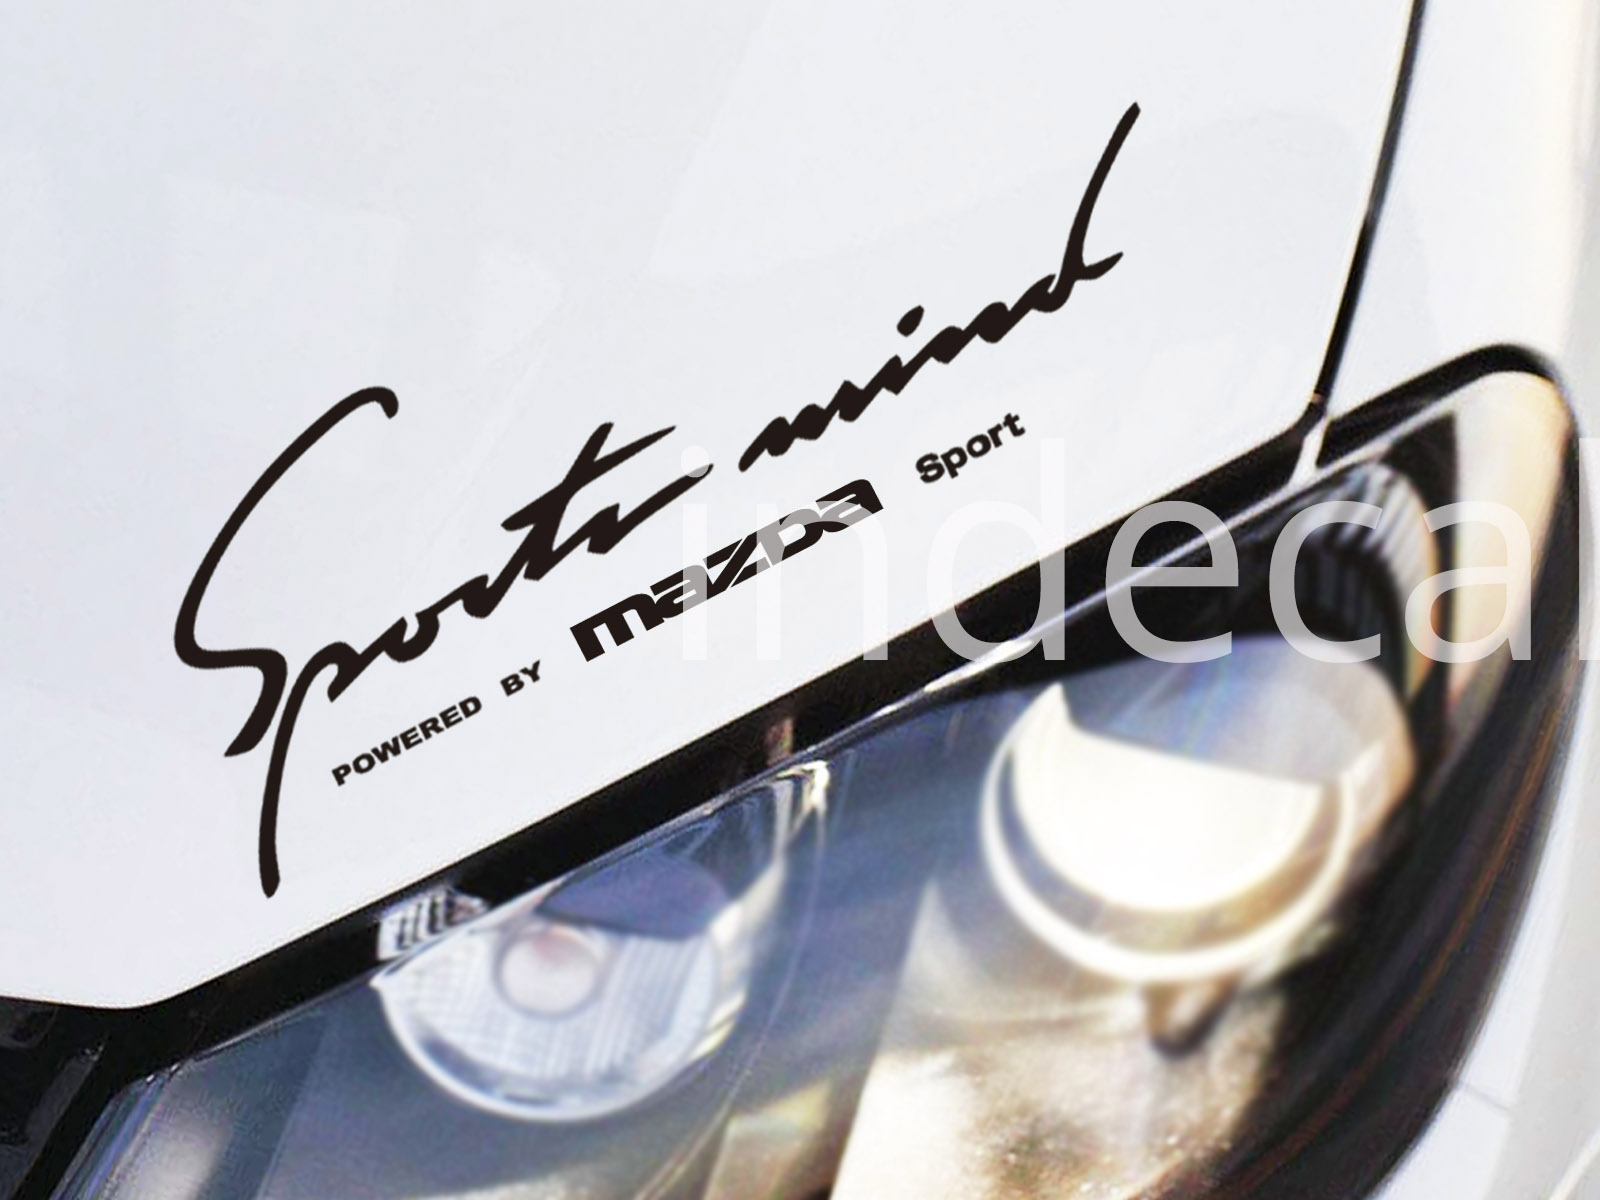 1 x Mazda Sports Mind Sticker - Black